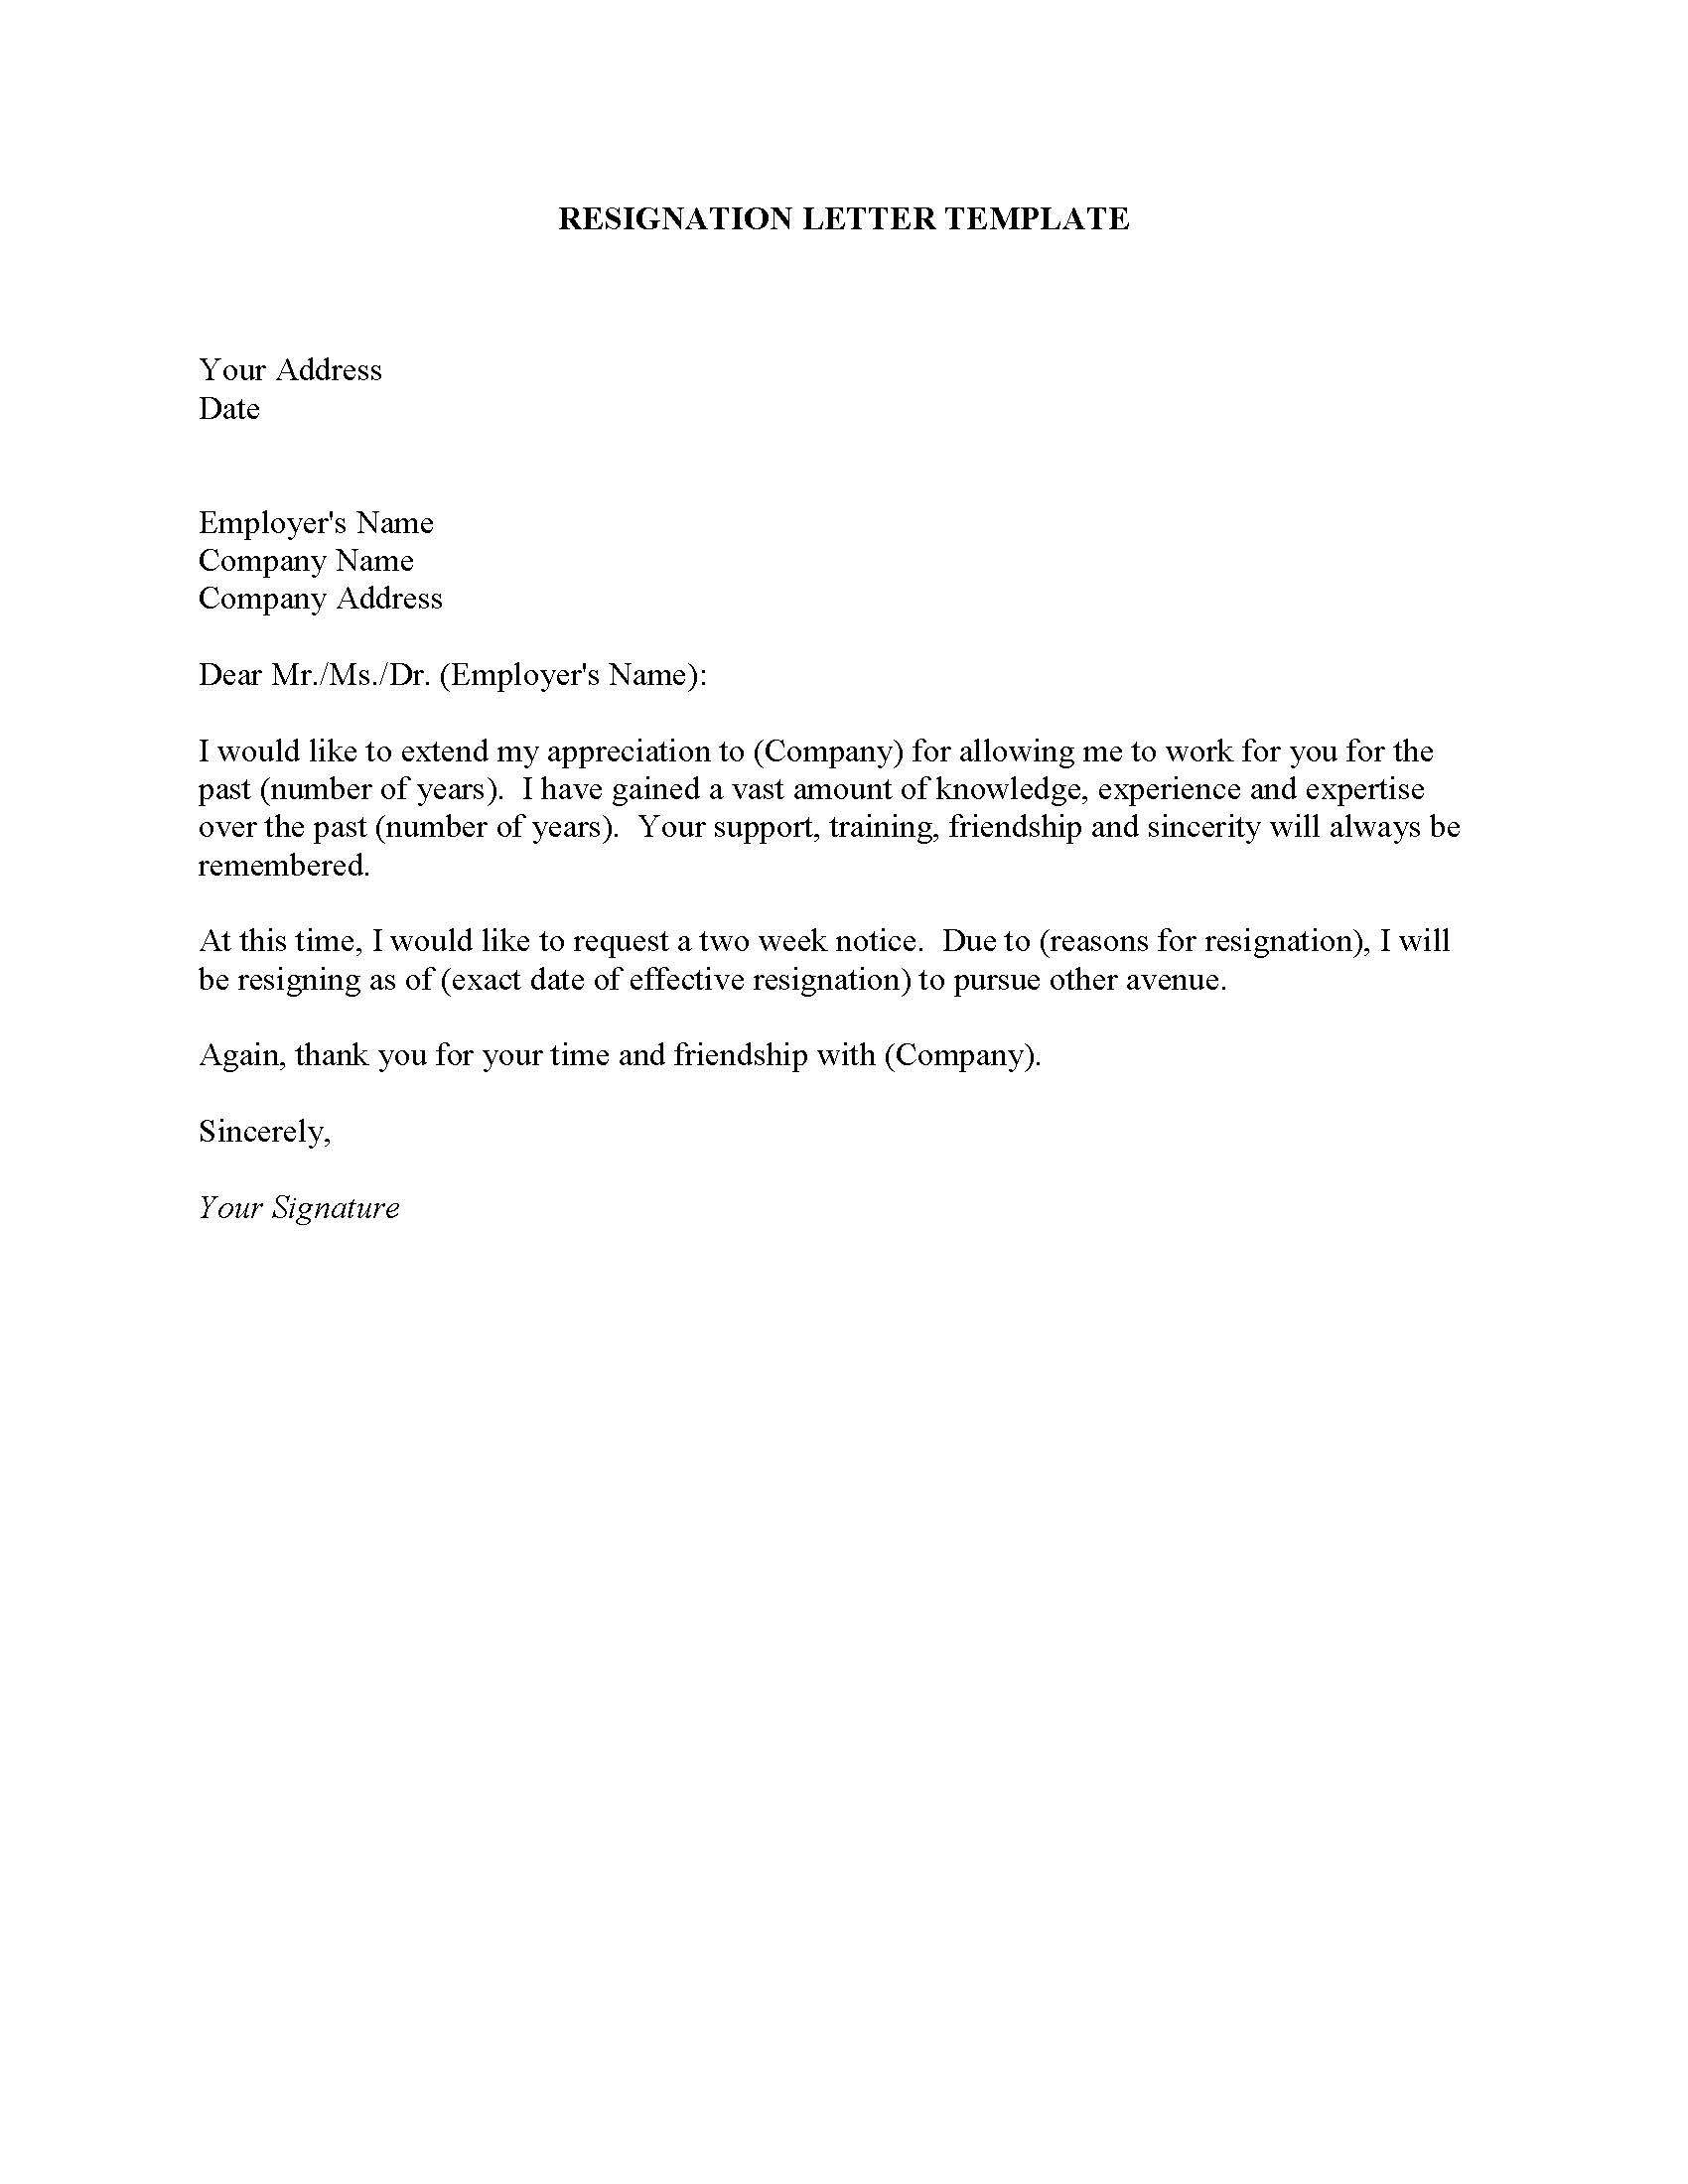 Resigning letter example Obfuscata – Www.resignation Letter Example